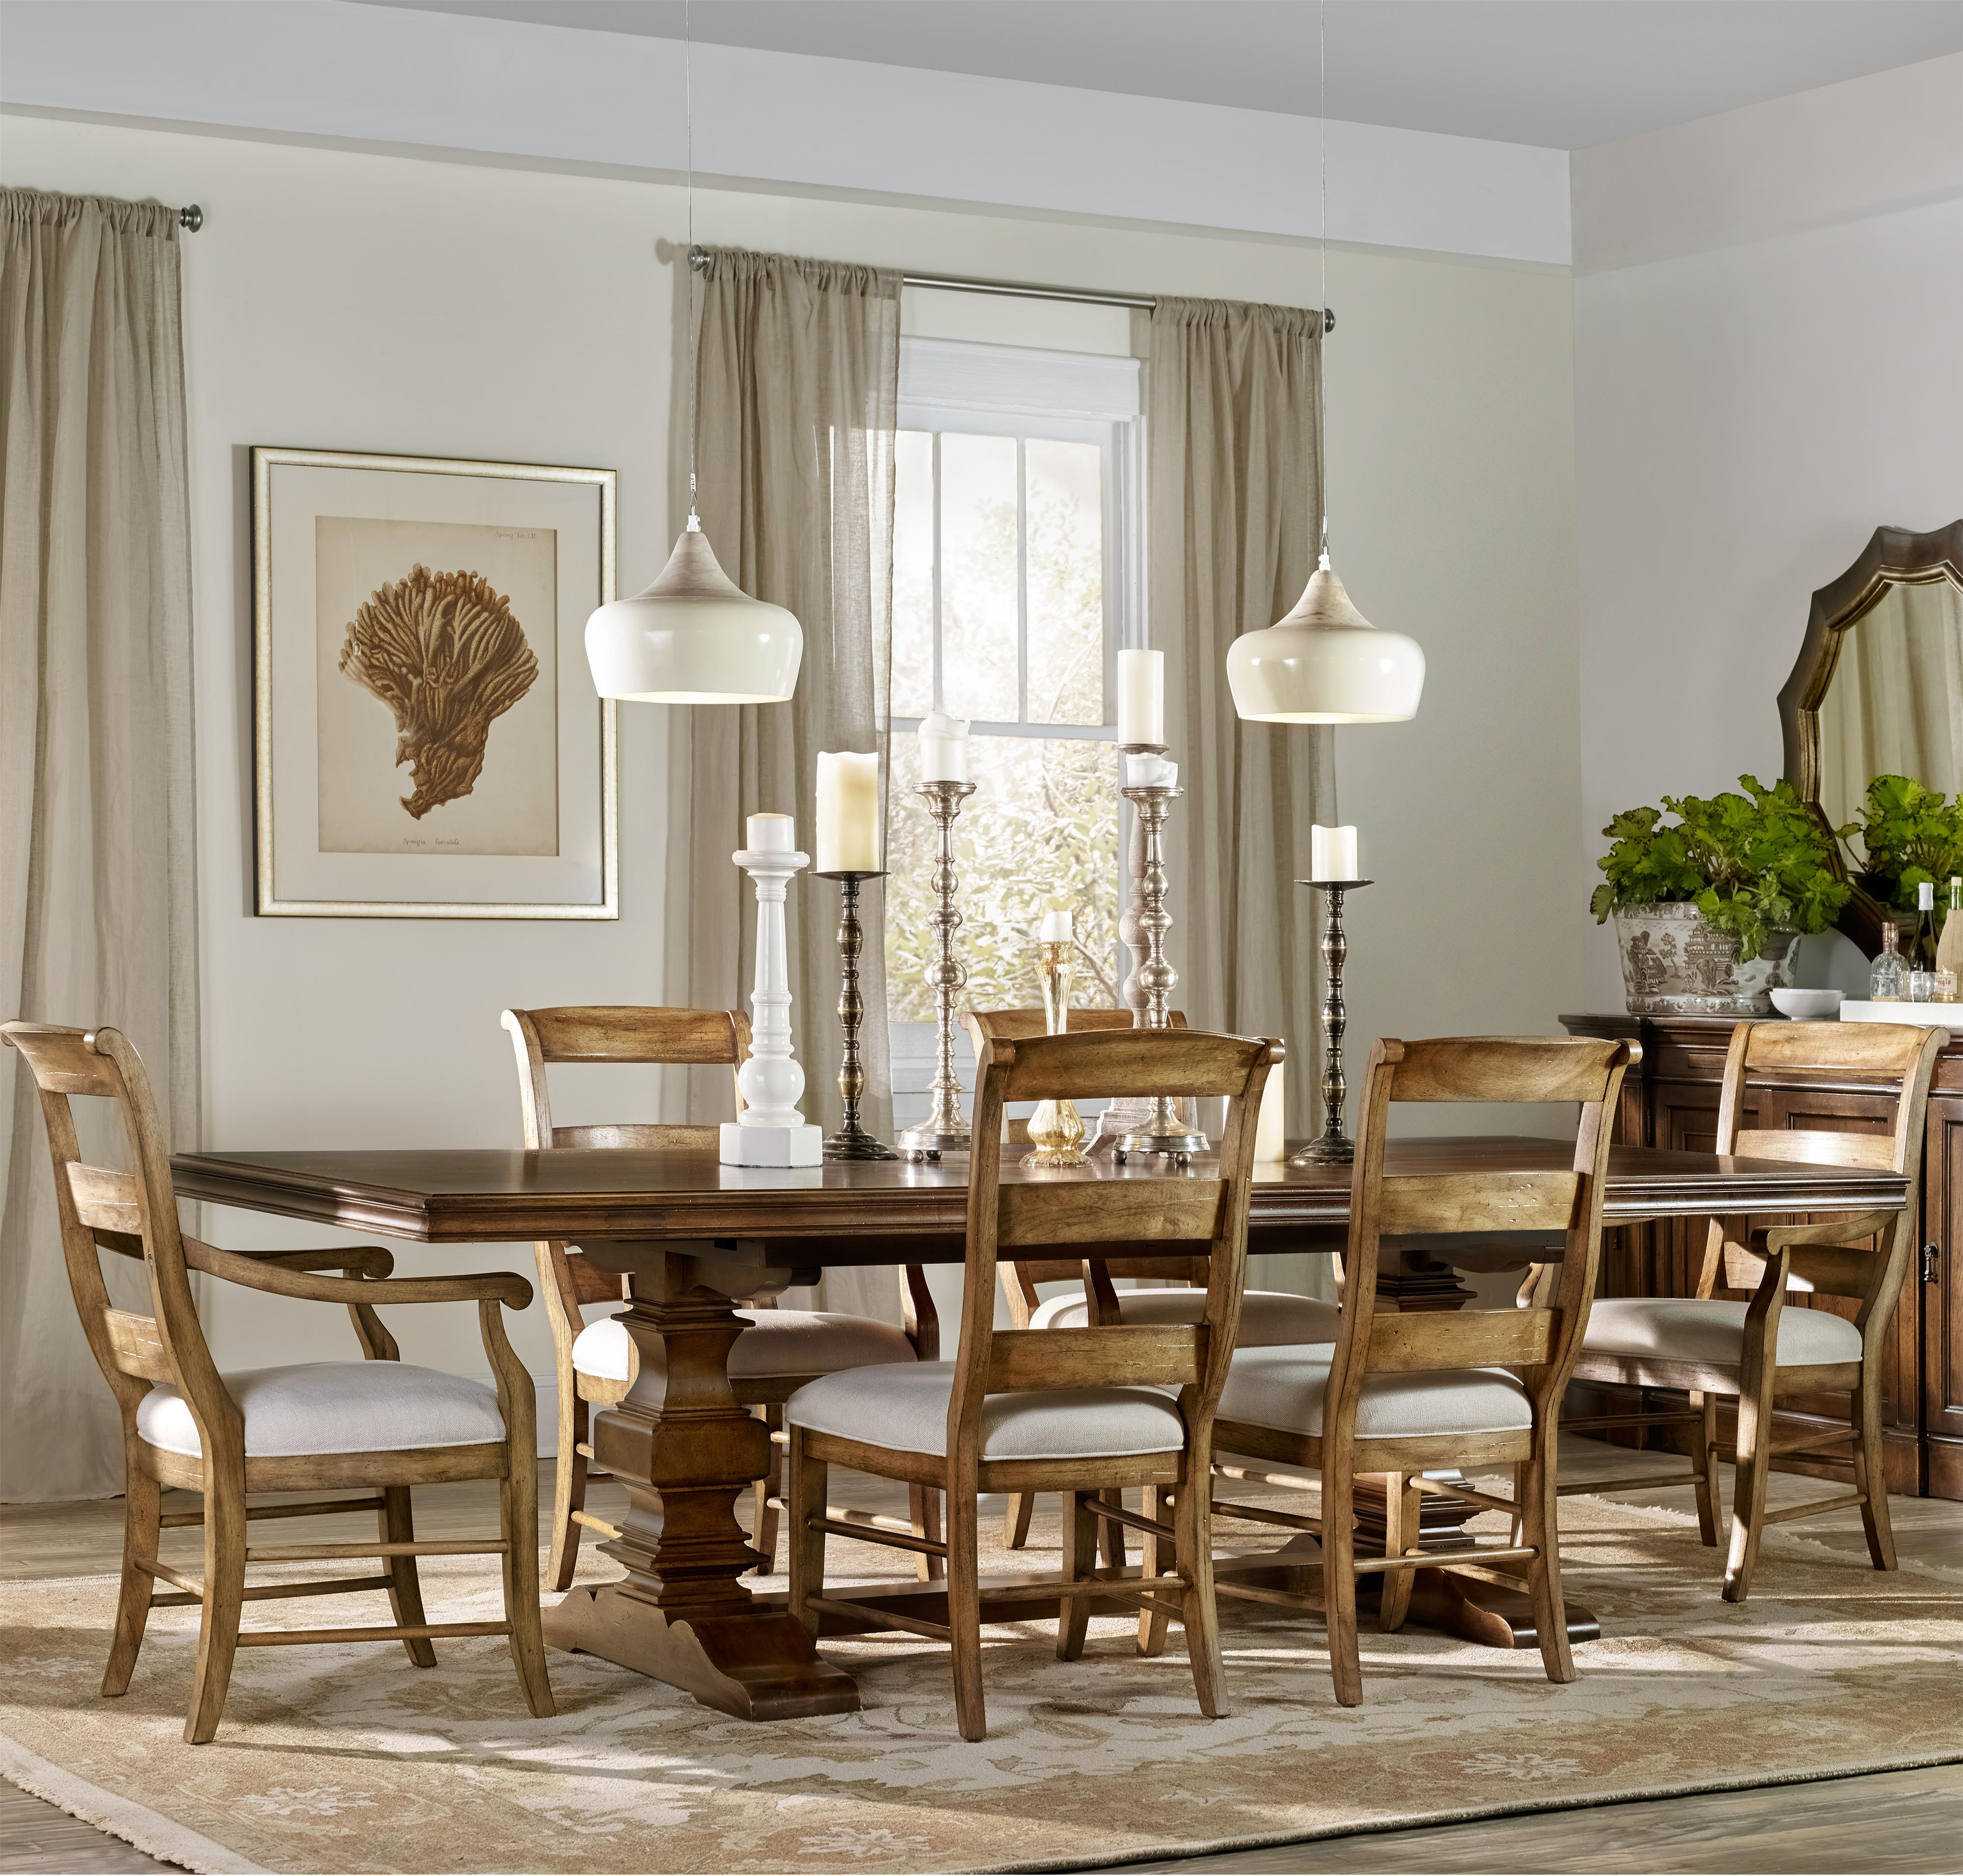 Hooker Furniture Archivist 7 Piece Dining Set - Item Number: 5447-75206+2x700+4x710-TOFFEE